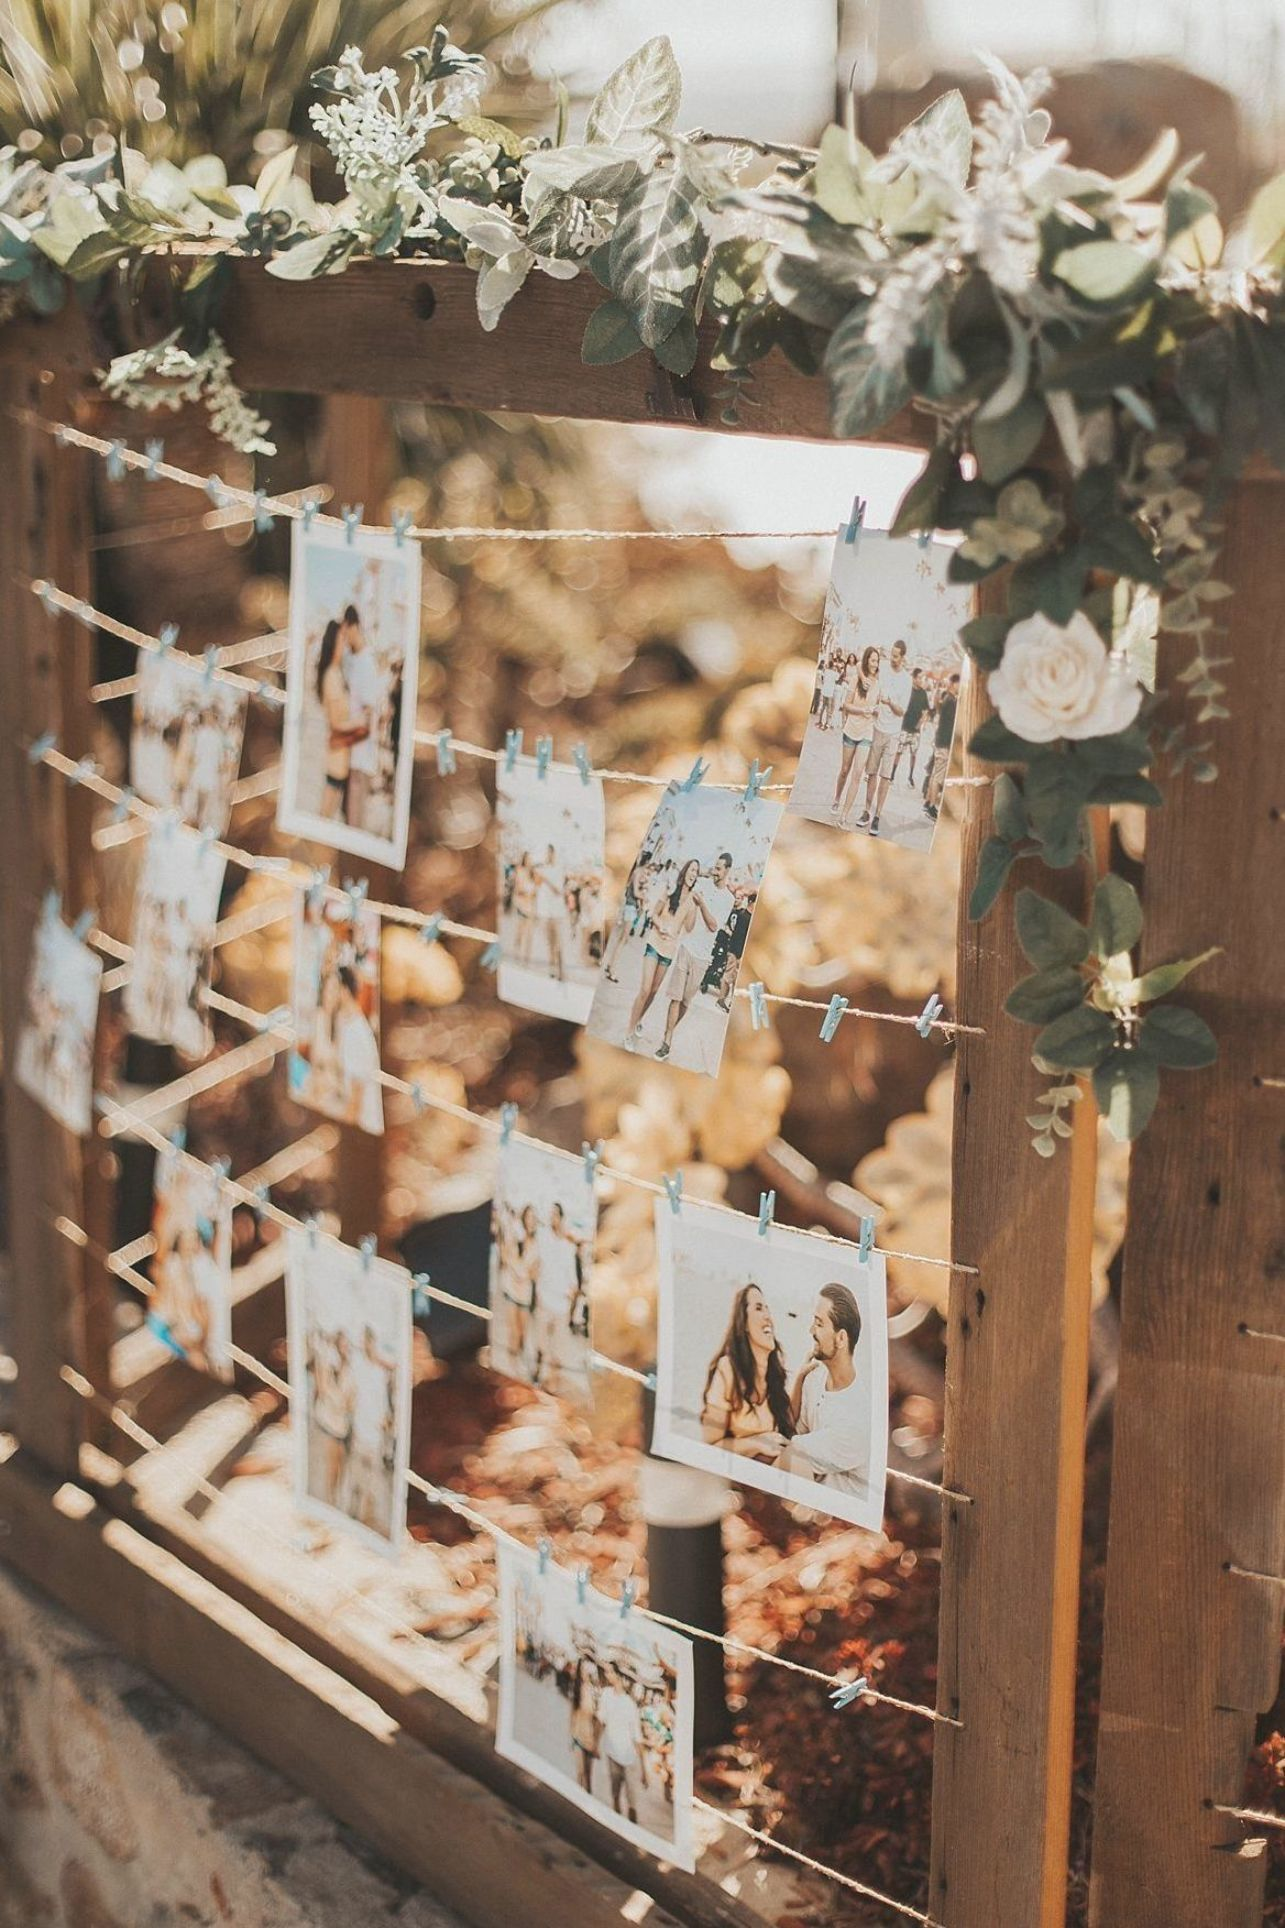 hanging photo to display the sweet moment with wooden frame